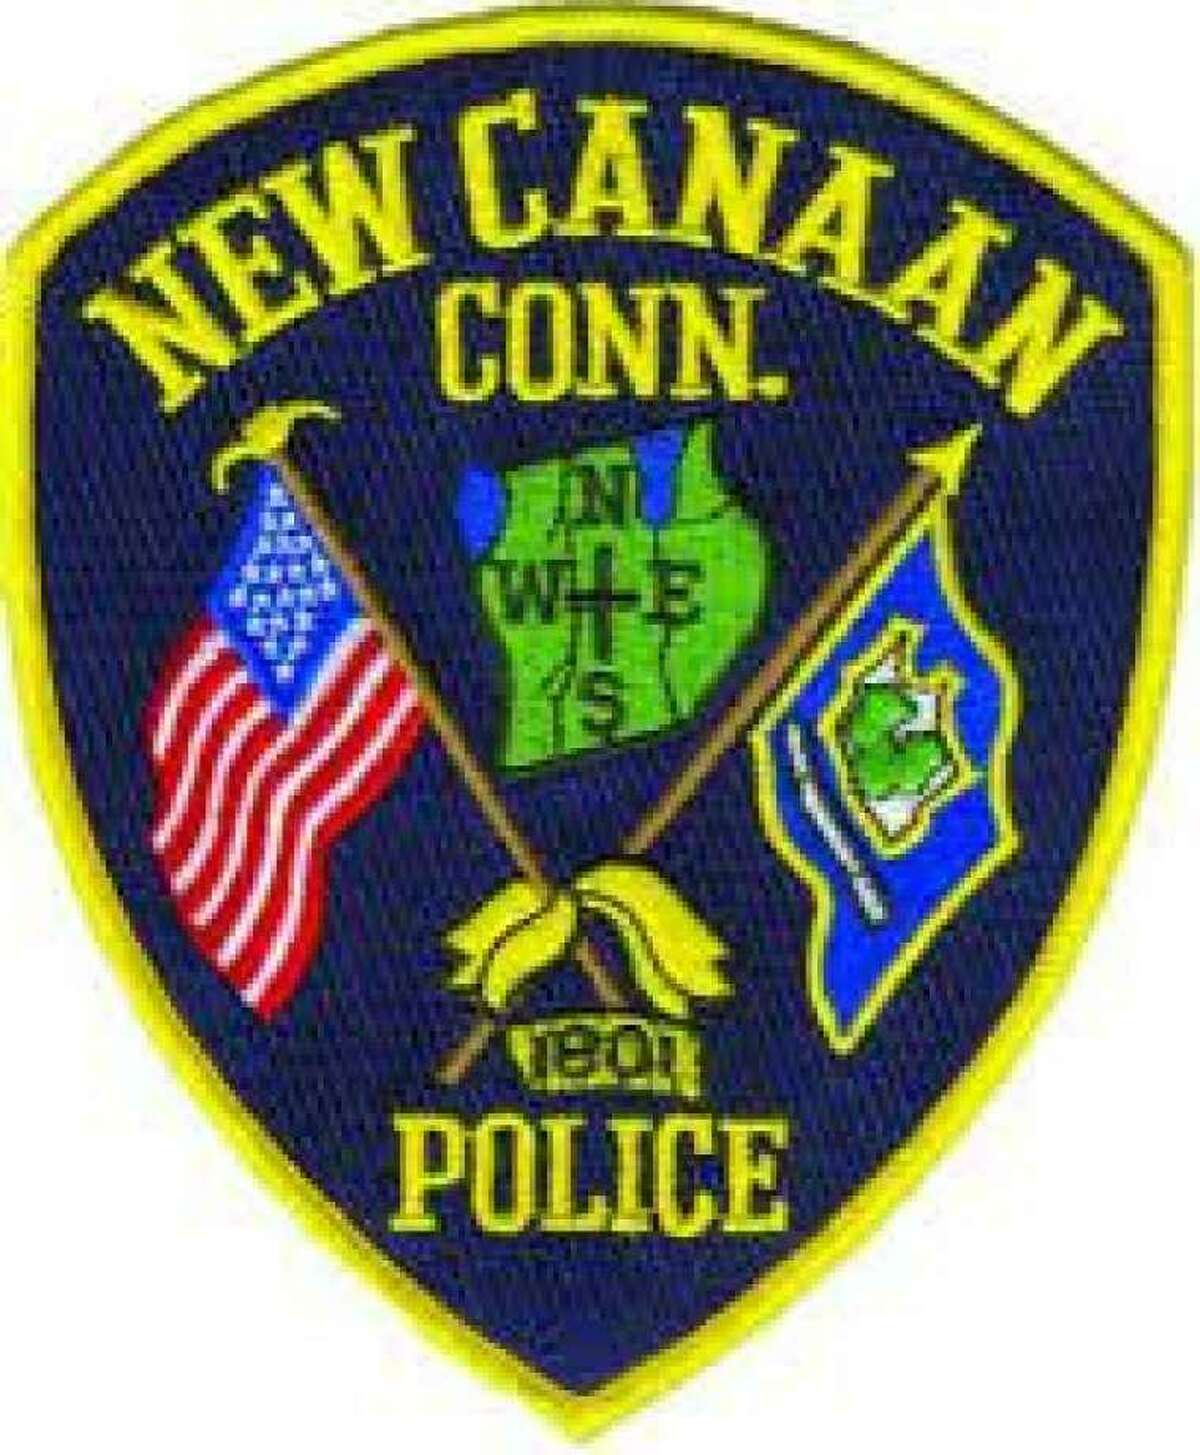 The next Coffee with a Cop event in New Canaan, Connecticut will be held on Thursday, Oct. 24, 2019, in the town's Mead Memorial Park. New Canaan Police Department badge / Contributed photo